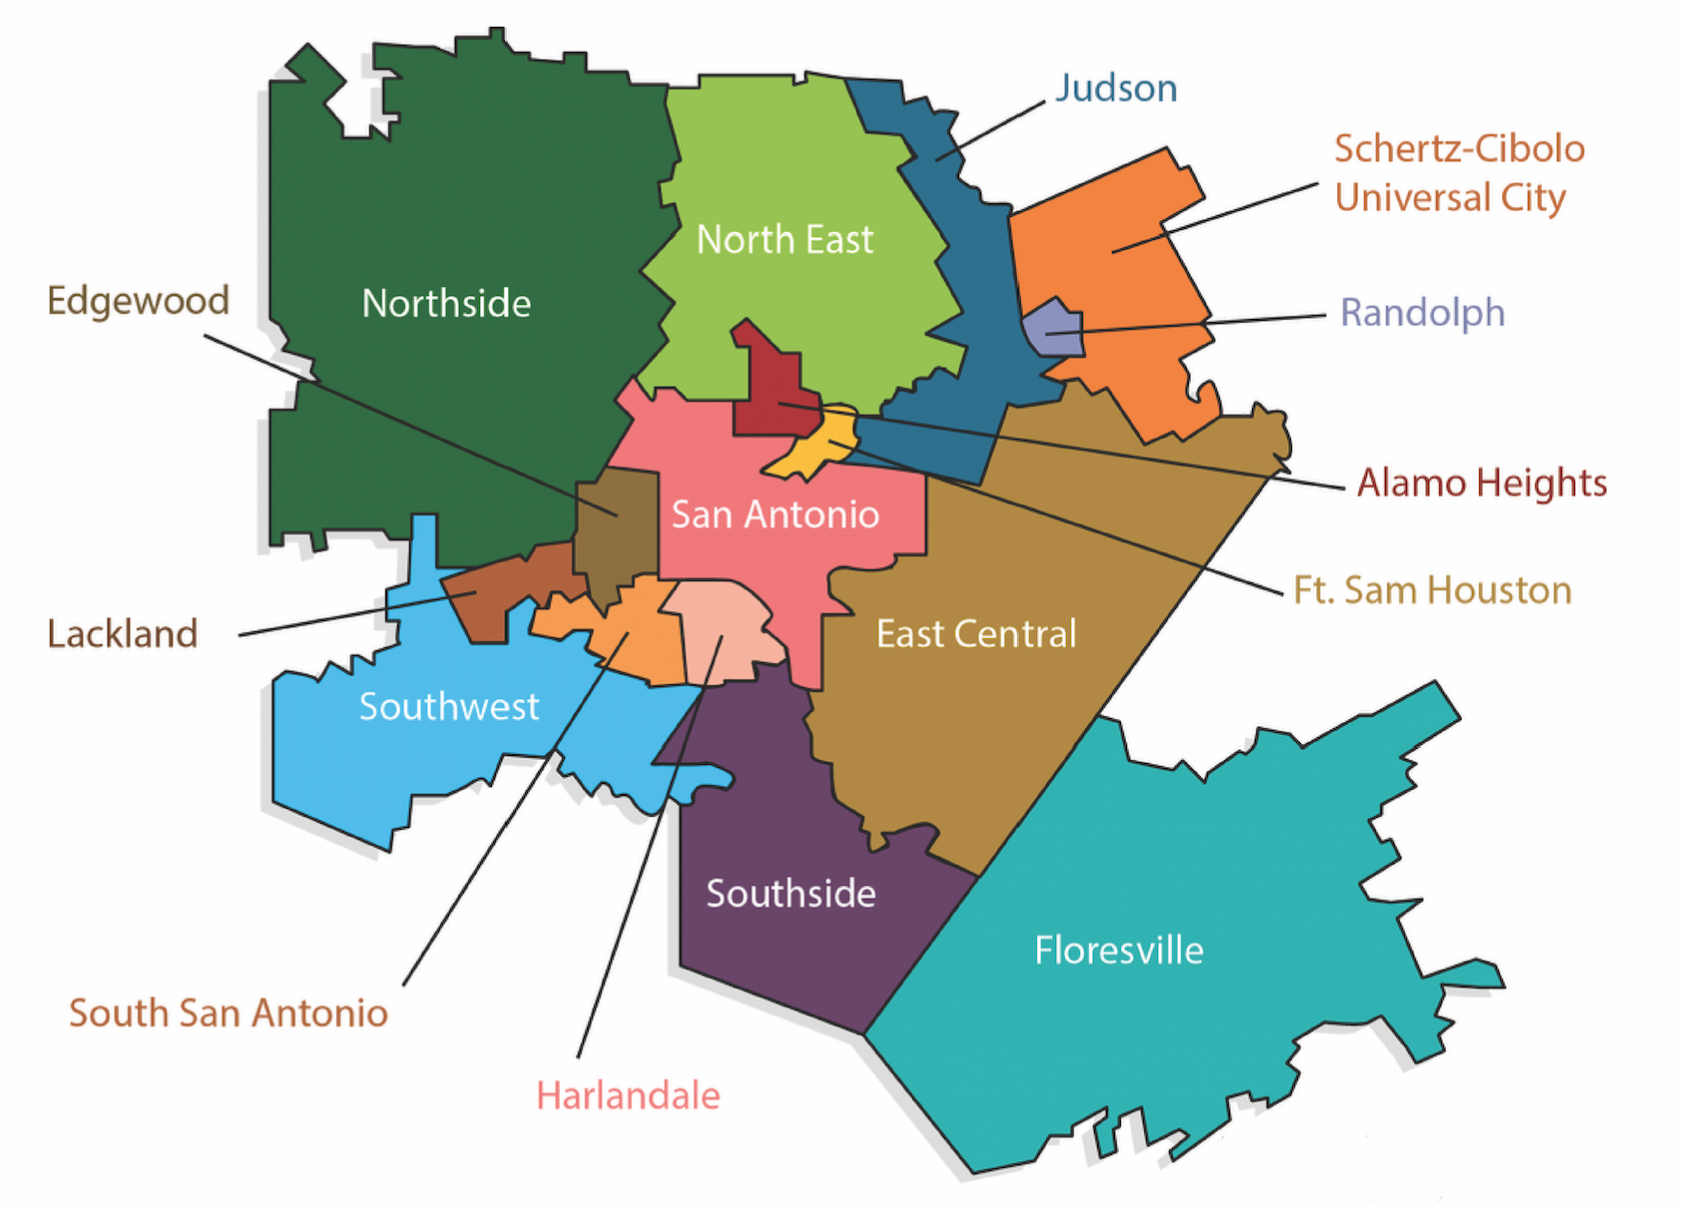 San Antonio s Are Still Segregated – By Income As Much As ... on address map of houston, class map of houston, crime map of houston, geographic map of houston, industry map of houston, race map of houston, zipcode map of houston, demographics map of houston,